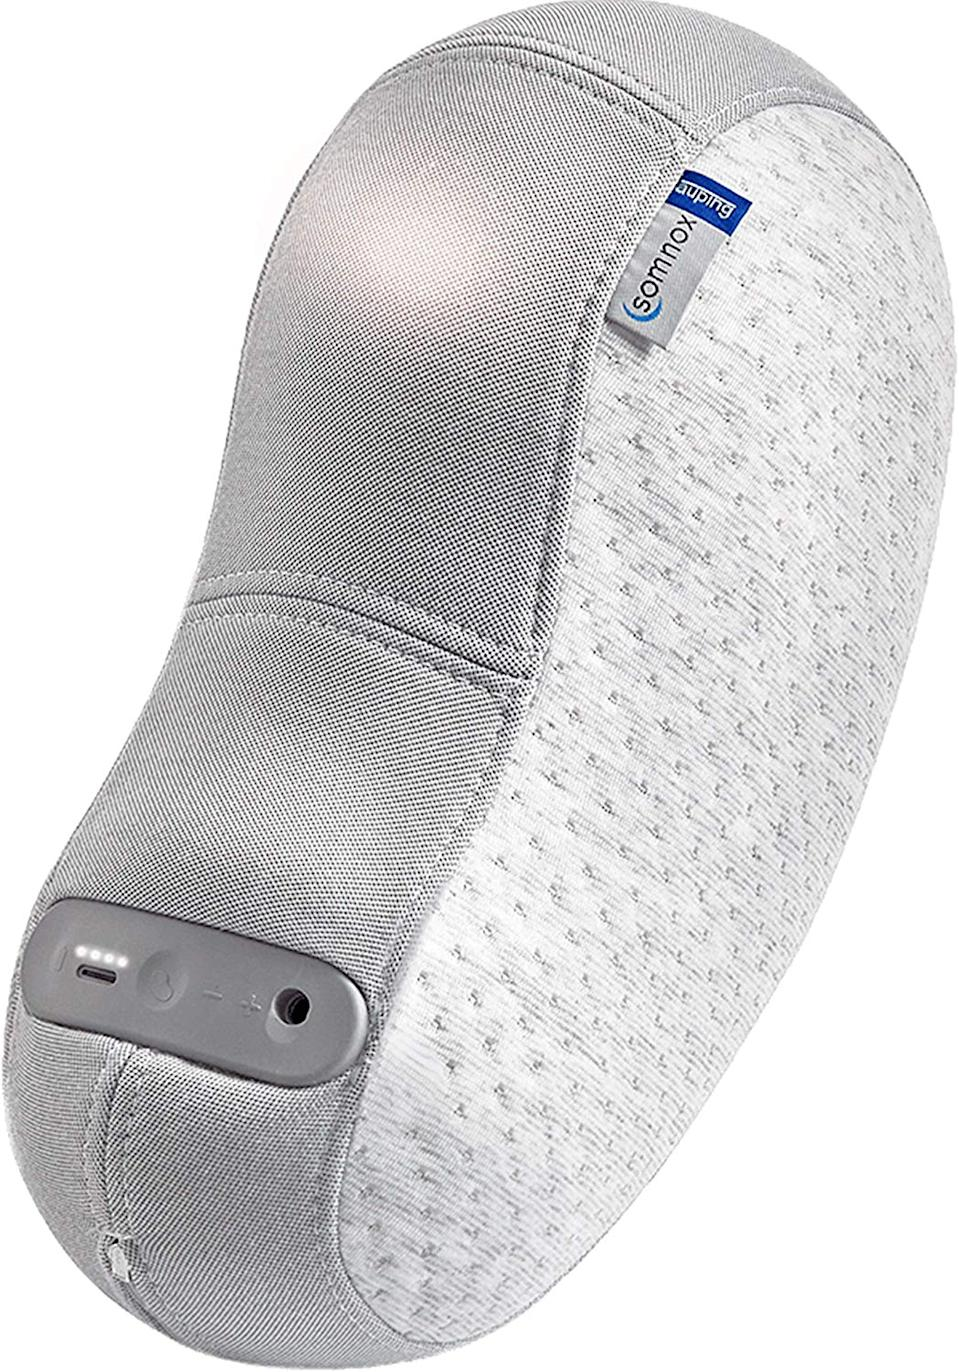 """<h2>Somnox Sleep Robot</h2>If you have a lot of extra dough to drop (this thing is pretty pricey) and you struggle with sleep, this sleep robot helps regulate your breathing and lower your heart rate so that you fall asleep faster and remain asleep for longer. Plus, it's $100 off for Black Friday and Cyber Monday. <br><br><br><strong>Somnox</strong> Somnox Sleep Robot, $, available at <a href=""""https://www.amazon.com/Somnox-Sleep-Robot-Connection-Compatible/dp/B07S2Y18PK"""" rel=""""nofollow noopener"""" target=""""_blank"""" data-ylk=""""slk:Amazon"""" class=""""link rapid-noclick-resp"""">Amazon</a><br>"""